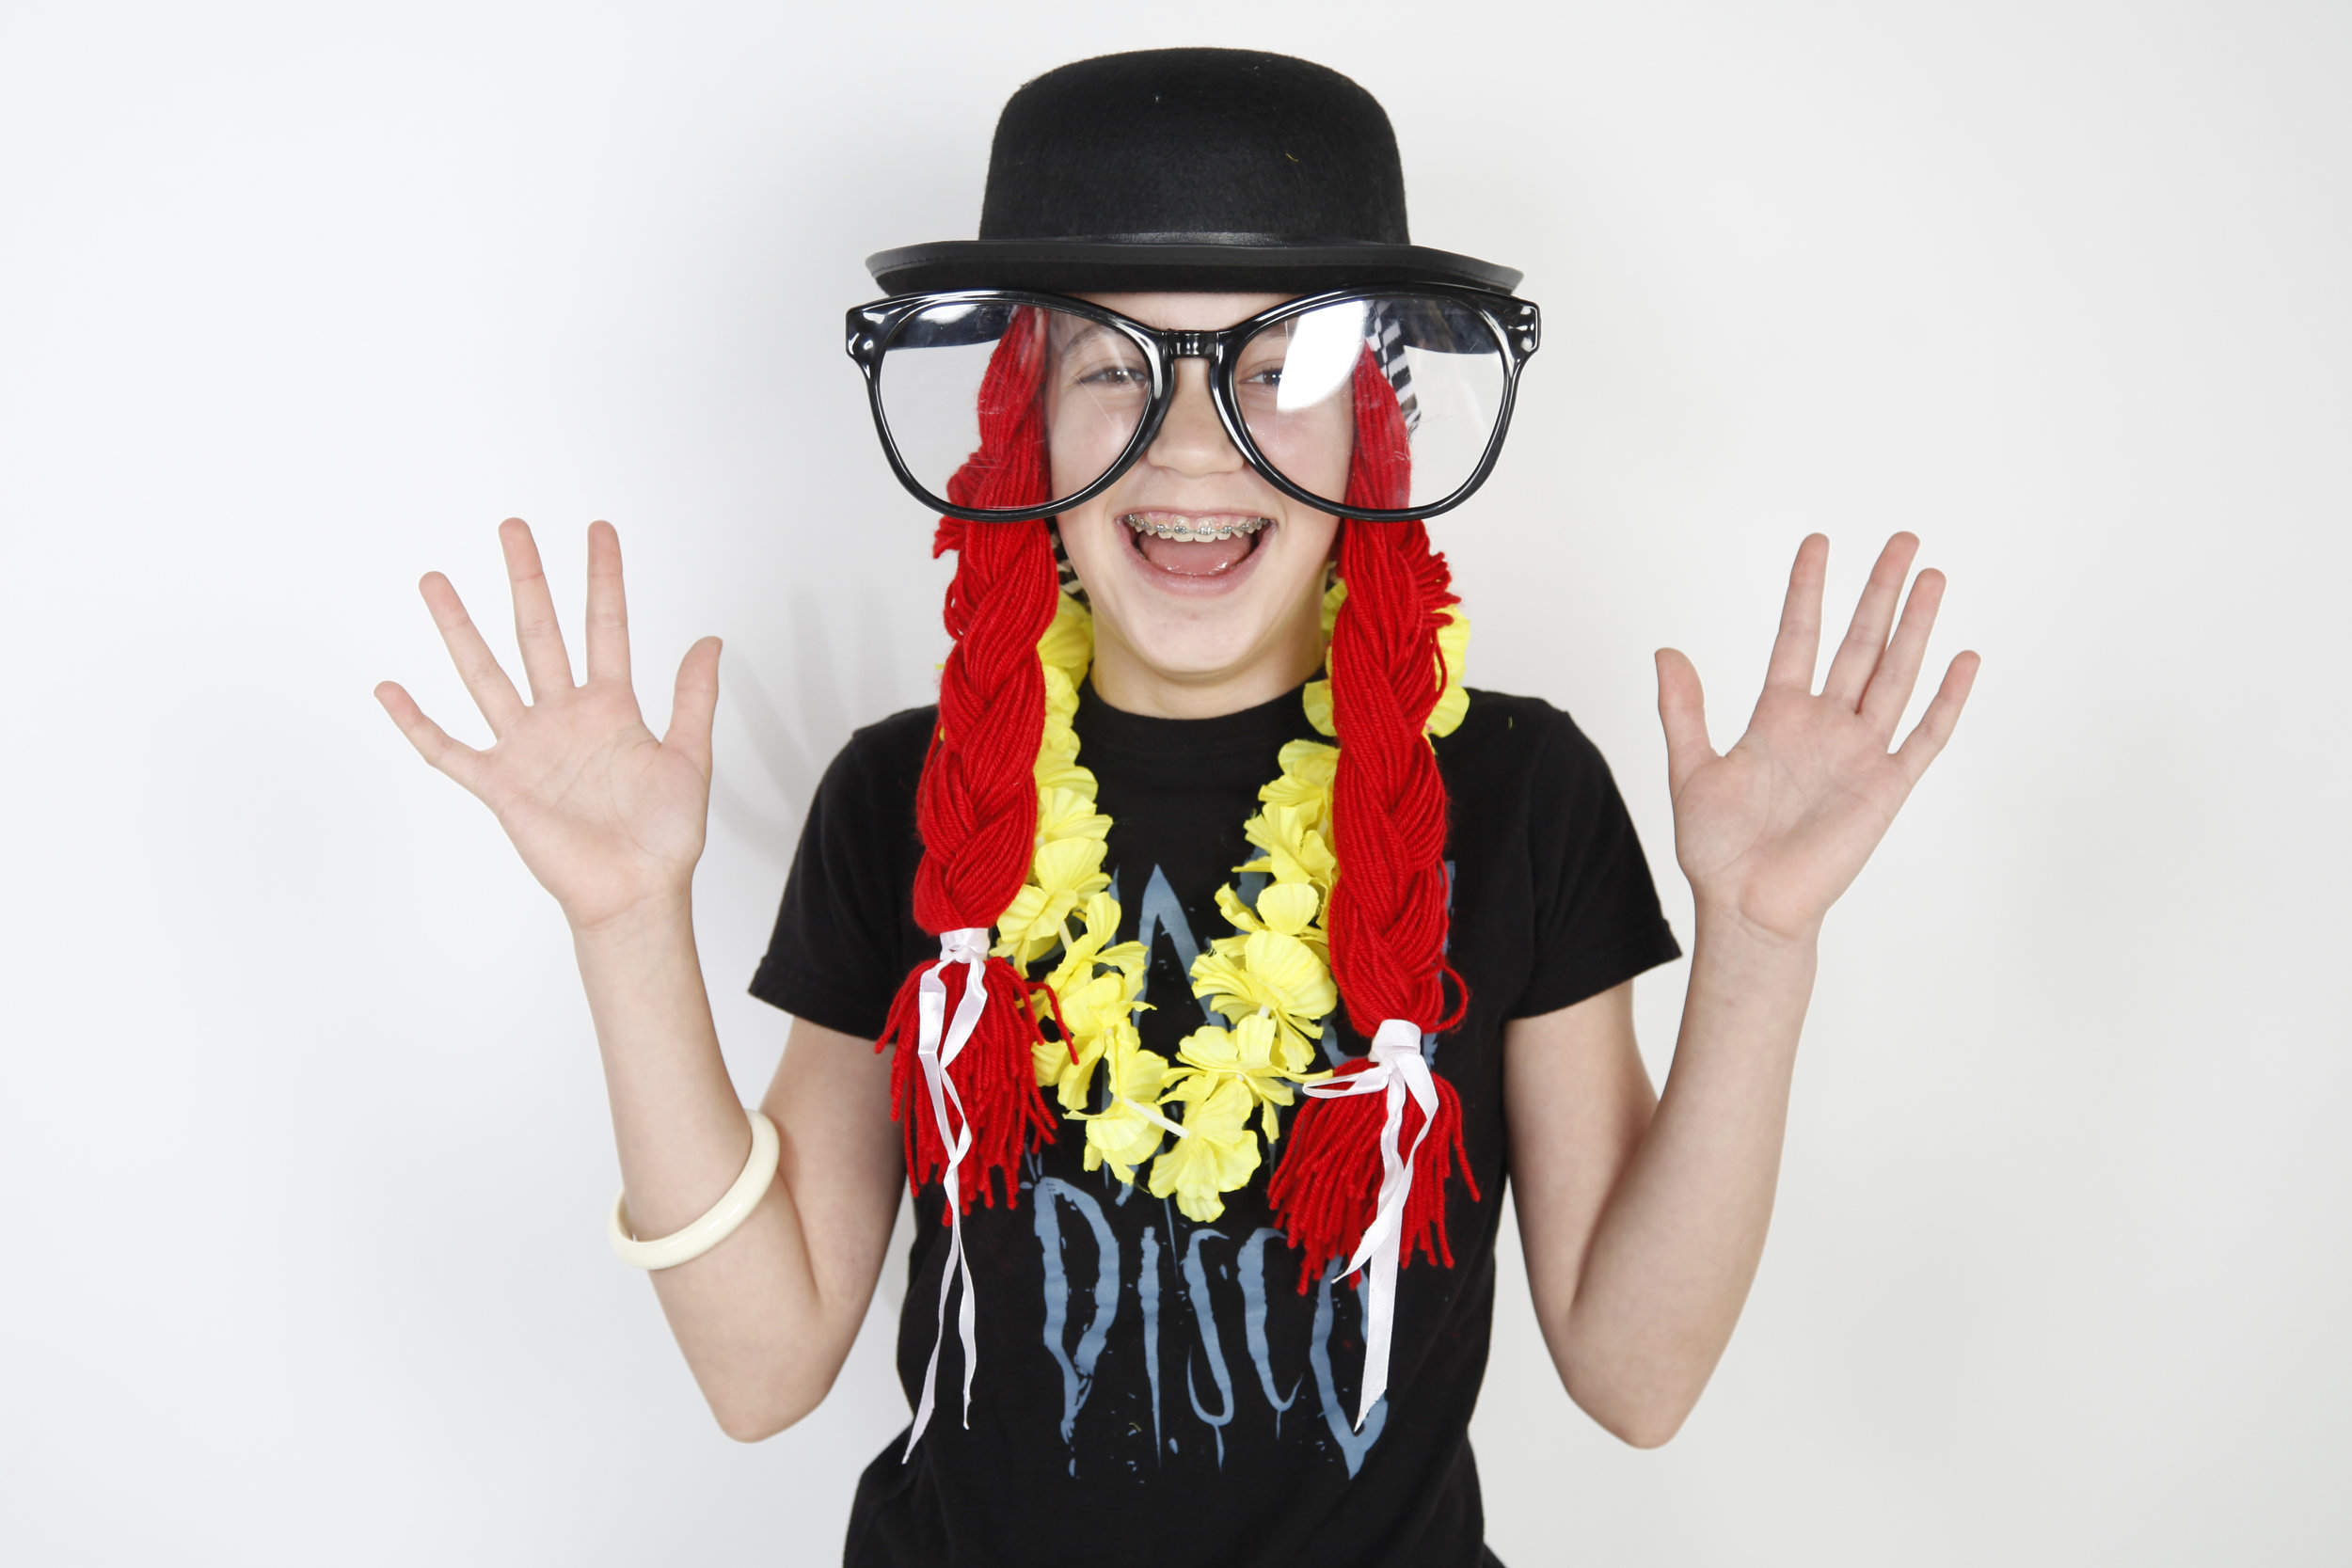 Young boy waving his hands, wearing costume props- oversized glasses and hat and braids.